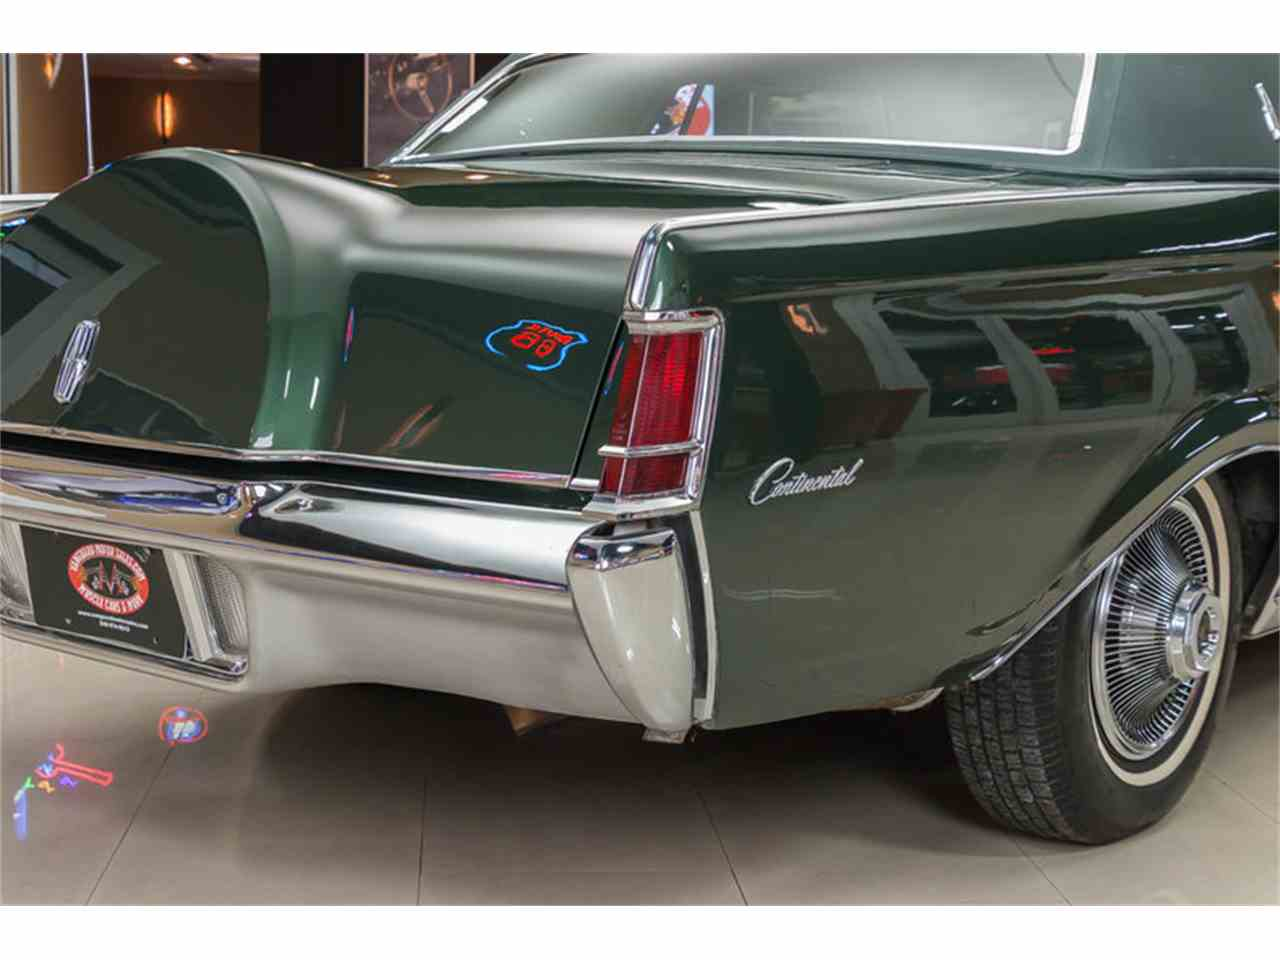 1969 lincoln continental mark iii for sale classiccars for Vanguard motor sales inventory